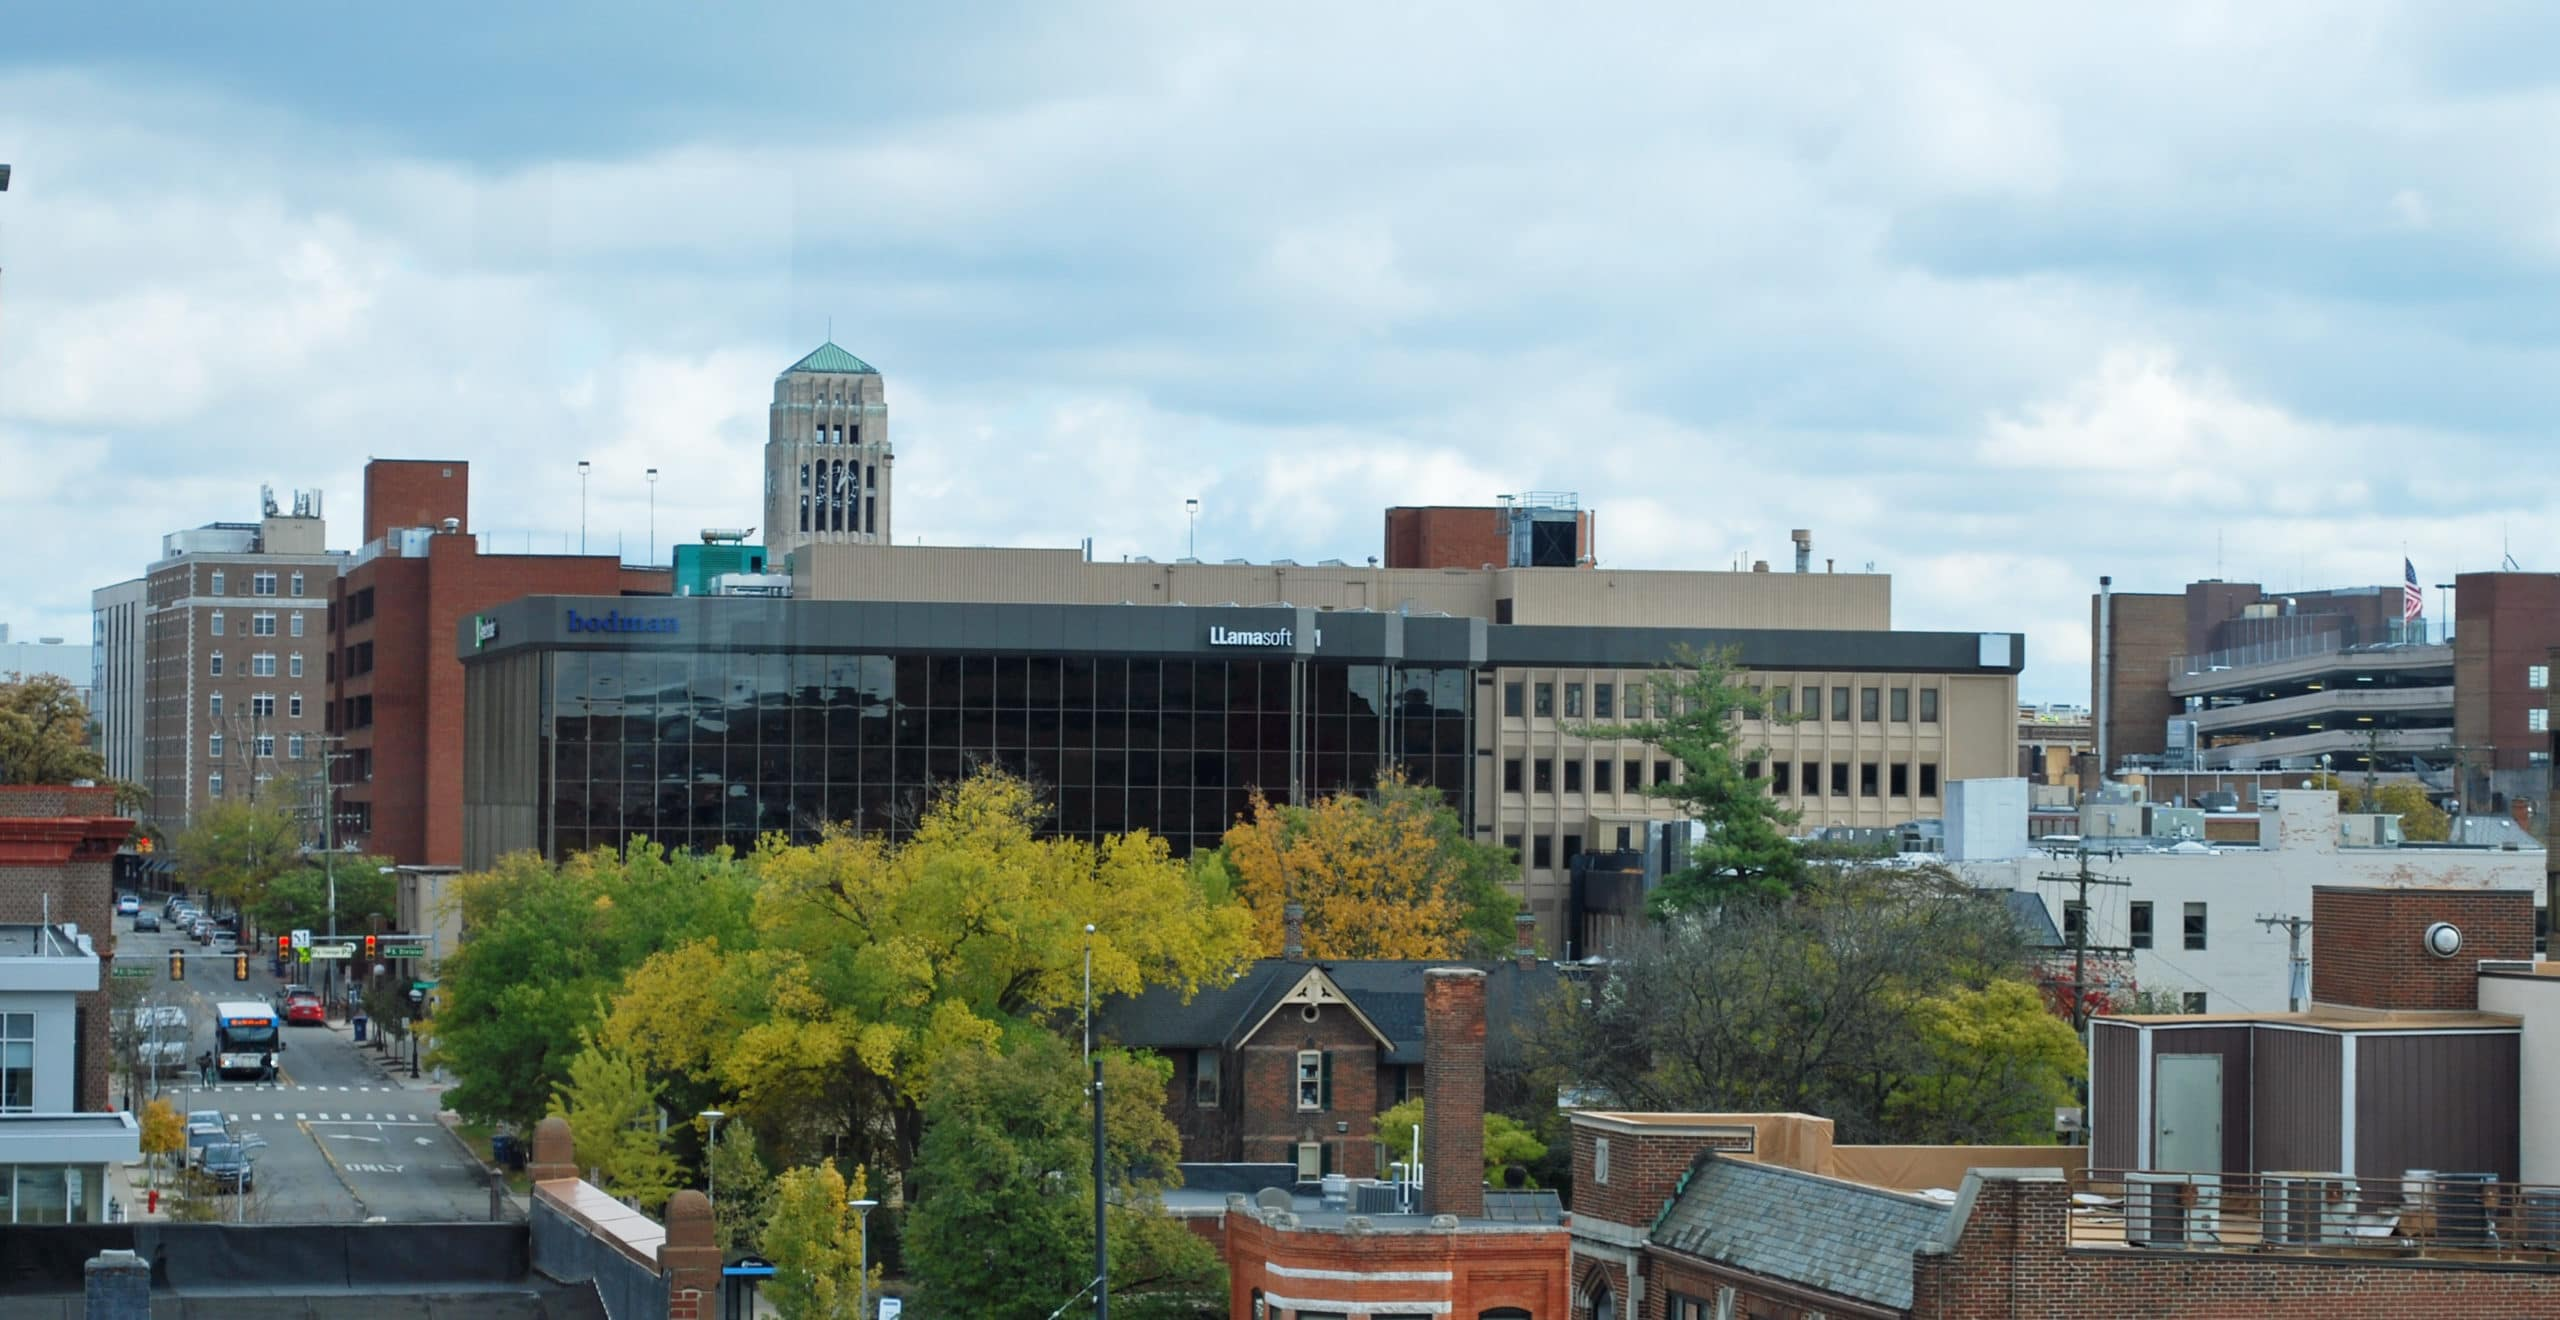 Ann Arbor tech, Ann Arbor skyline, Ann Arbor tech news, Cronicle Press